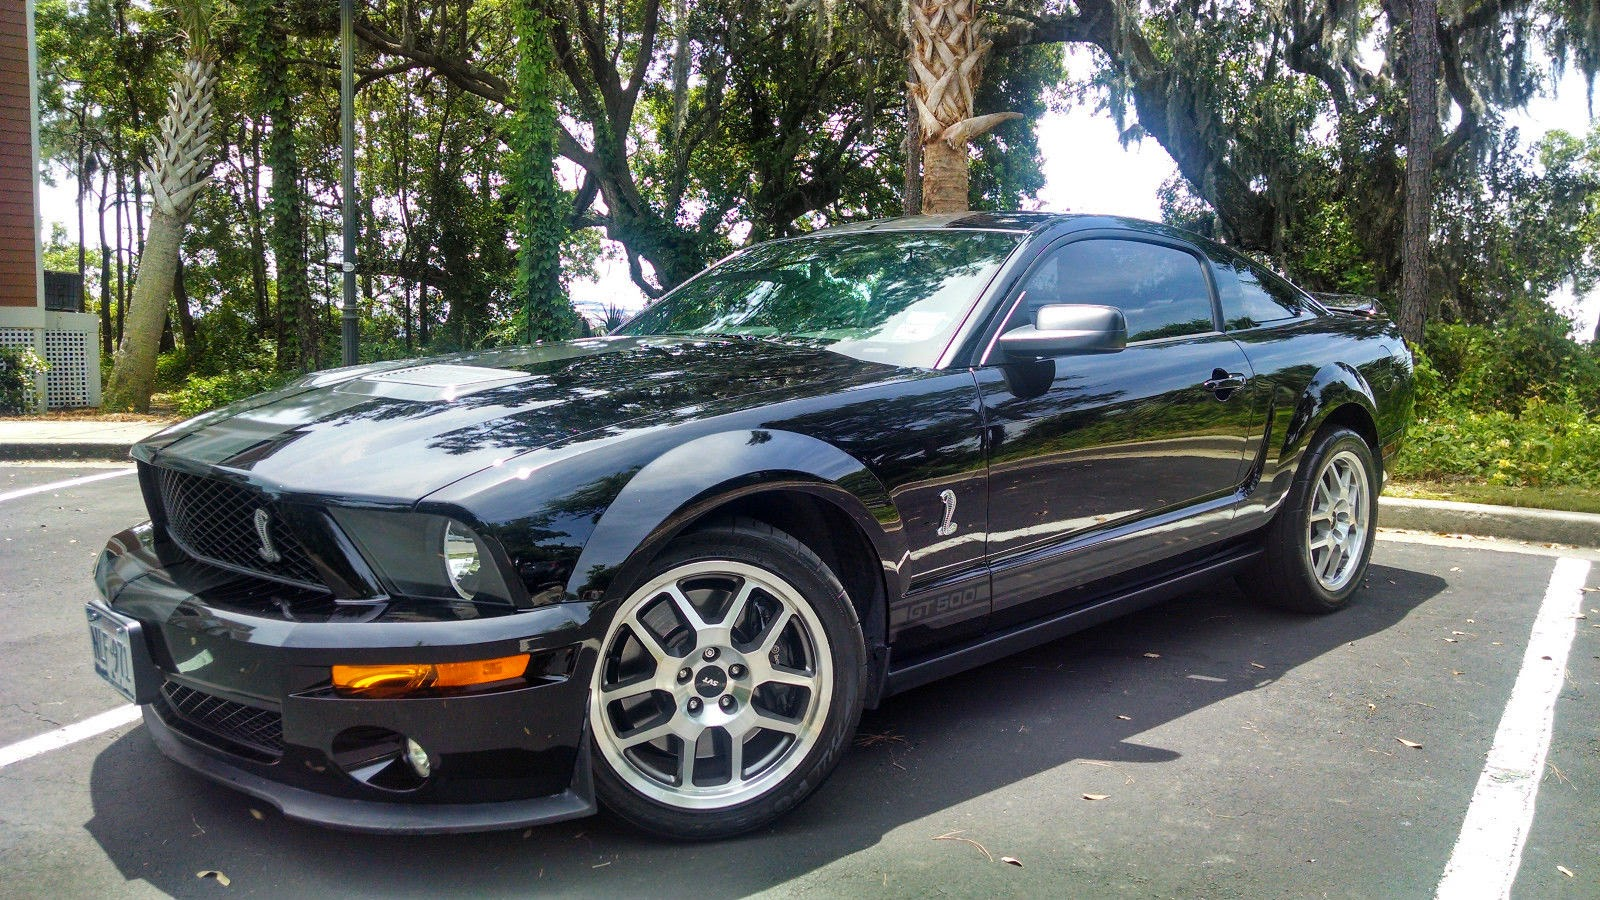 2008 ford mustang shelby gt500 5 4l supercharged for sale american muscle cars